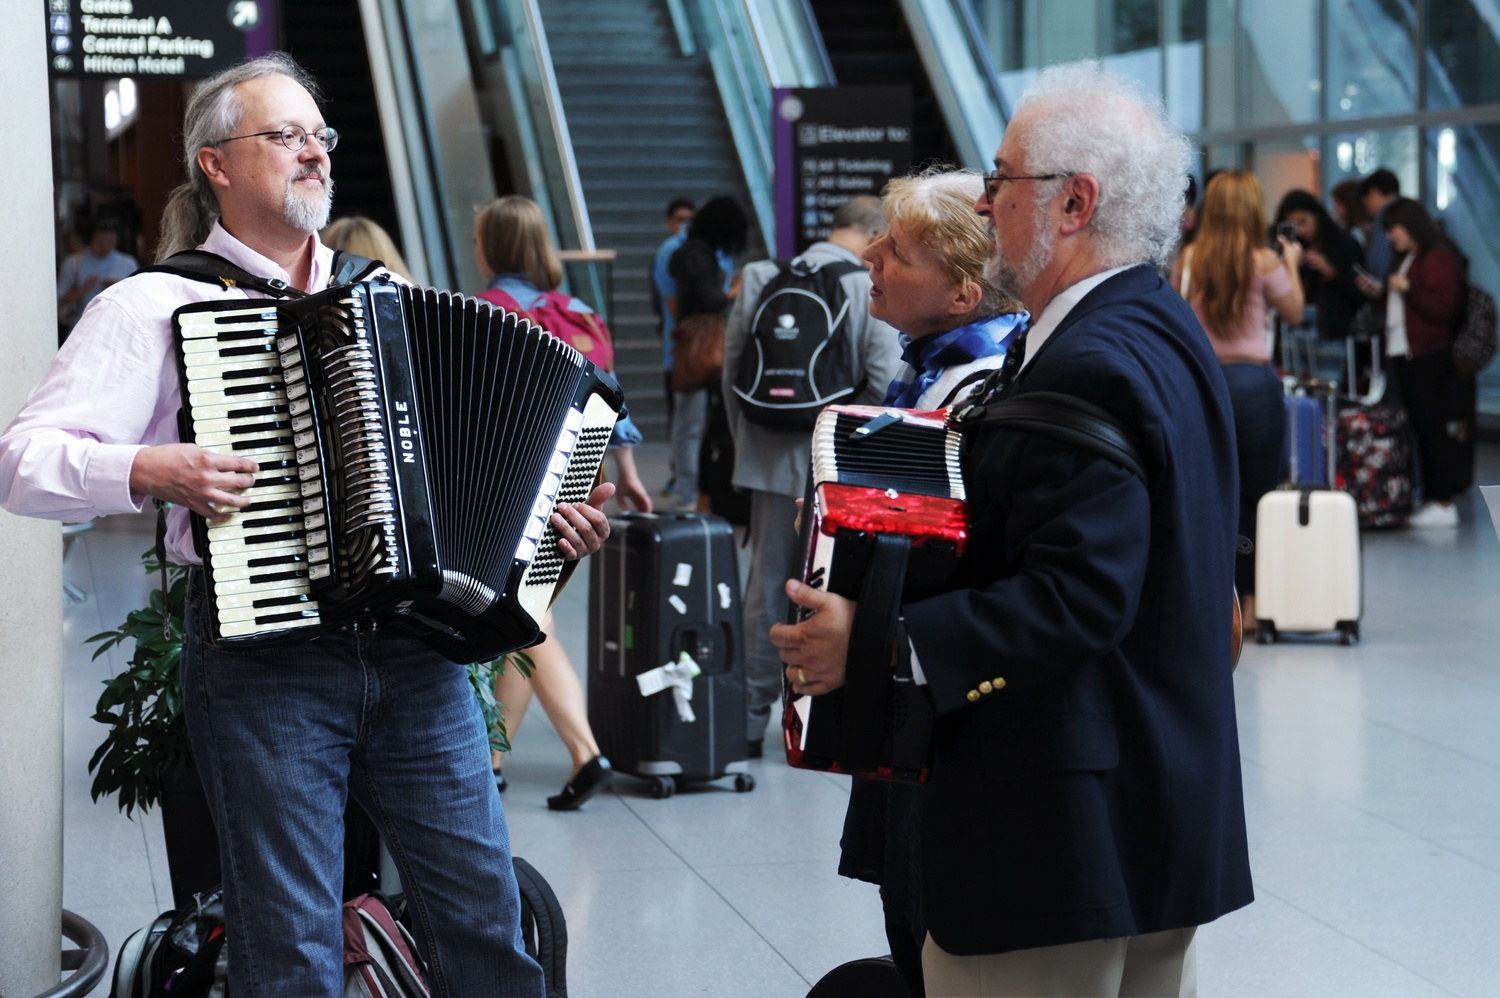 Professor Thomas M. Michel '77, right, plays the accordion as he and others await the arrival of Iranian scientist Seyed S. S. Saravi at Logan International Airport Wednesday afternoon.